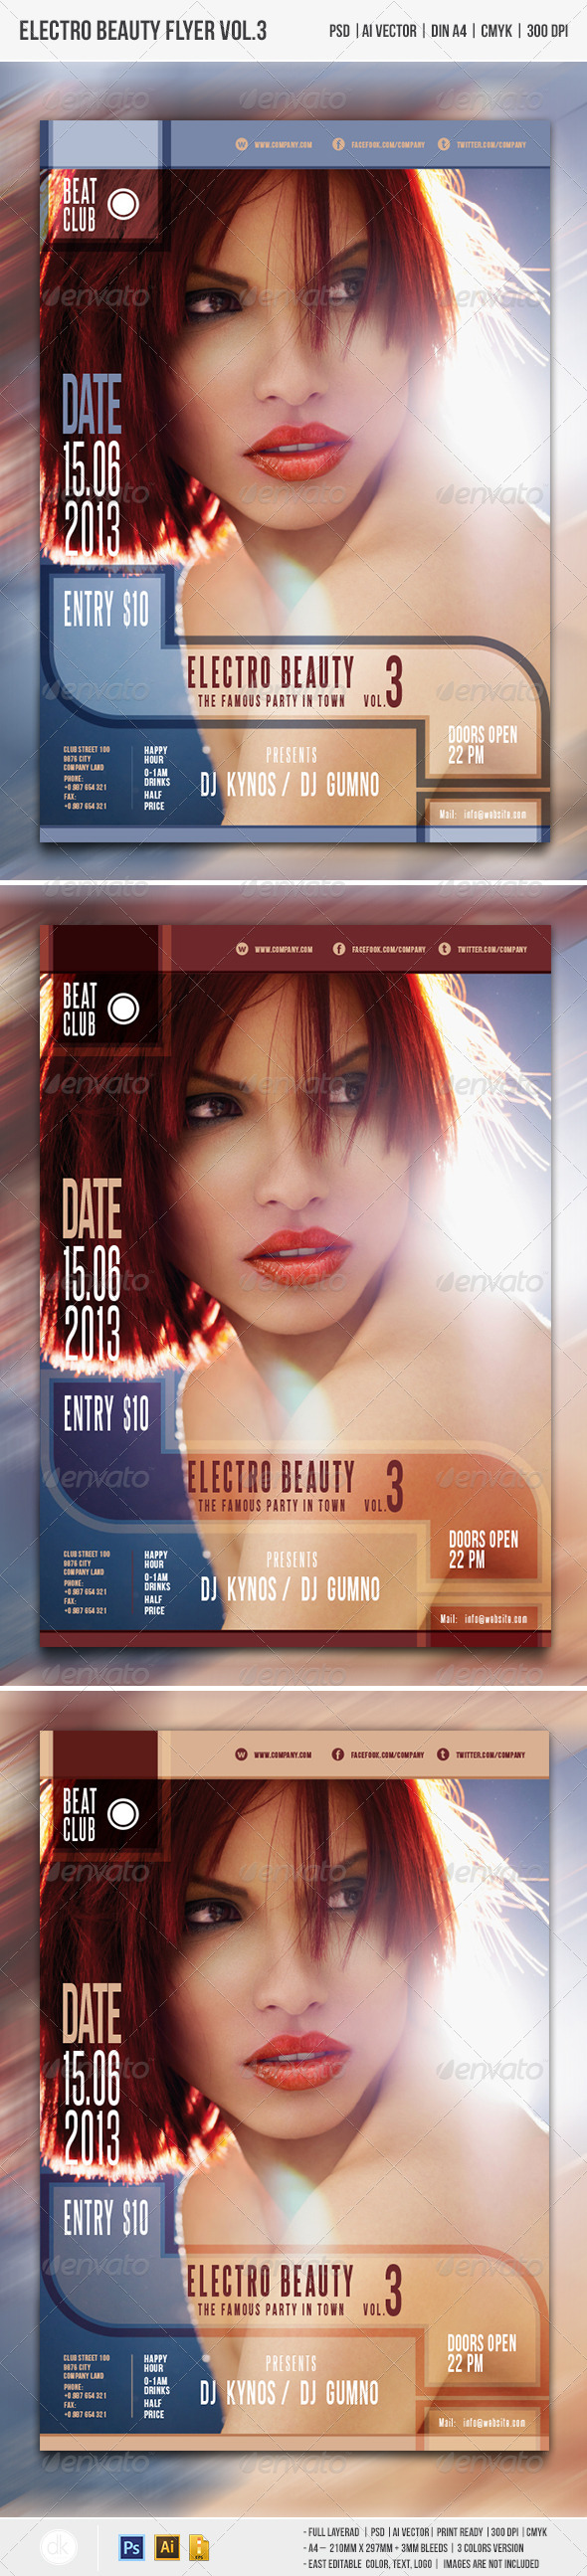 GraphicRiver Electro Beauty Flyer Vol.3 4458375